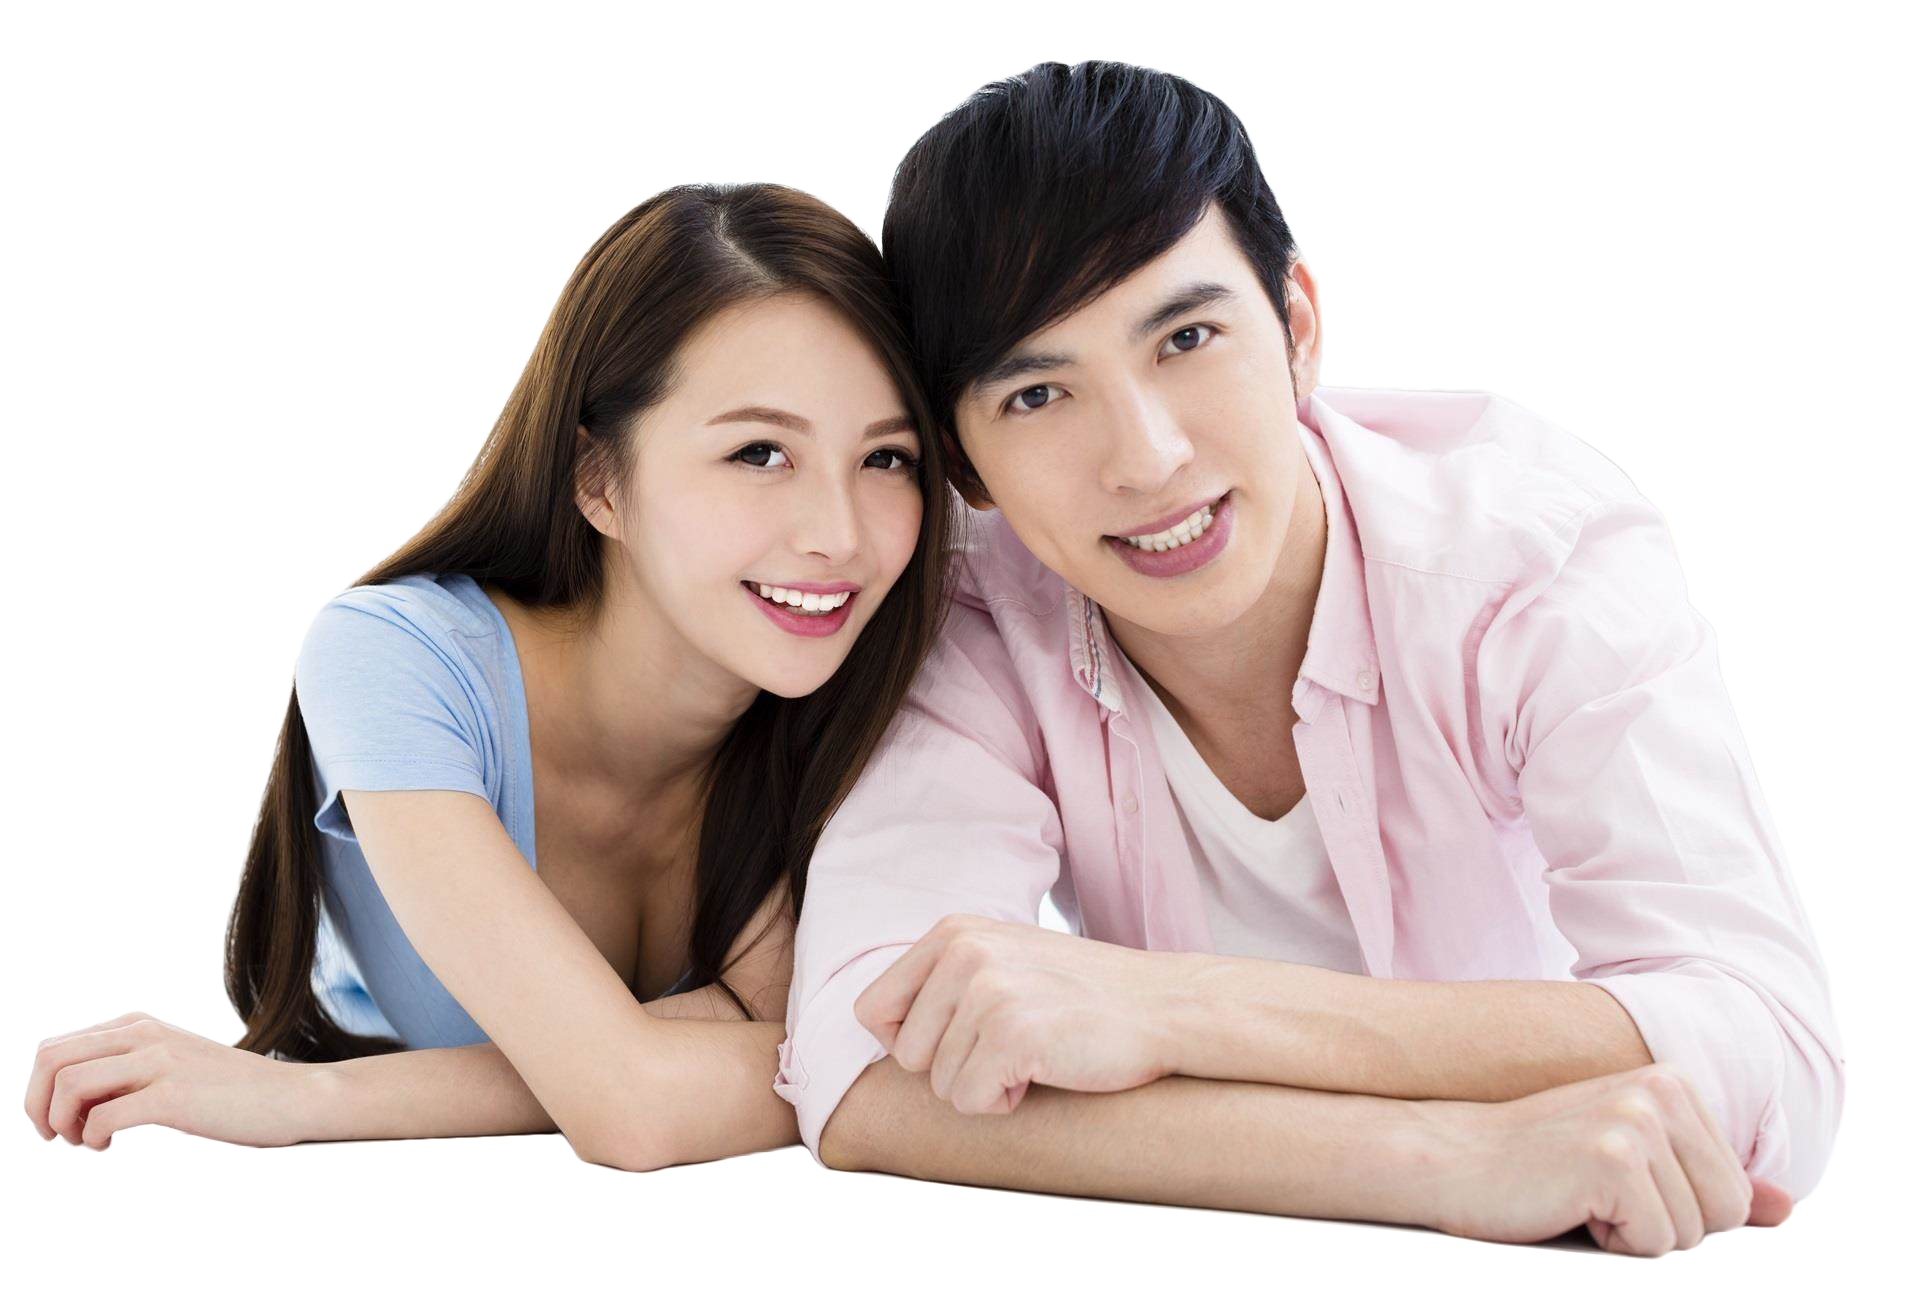 //hukmiplan.com/wp-content/uploads/2019/02/Skin-care-Asian-Couple-1.png